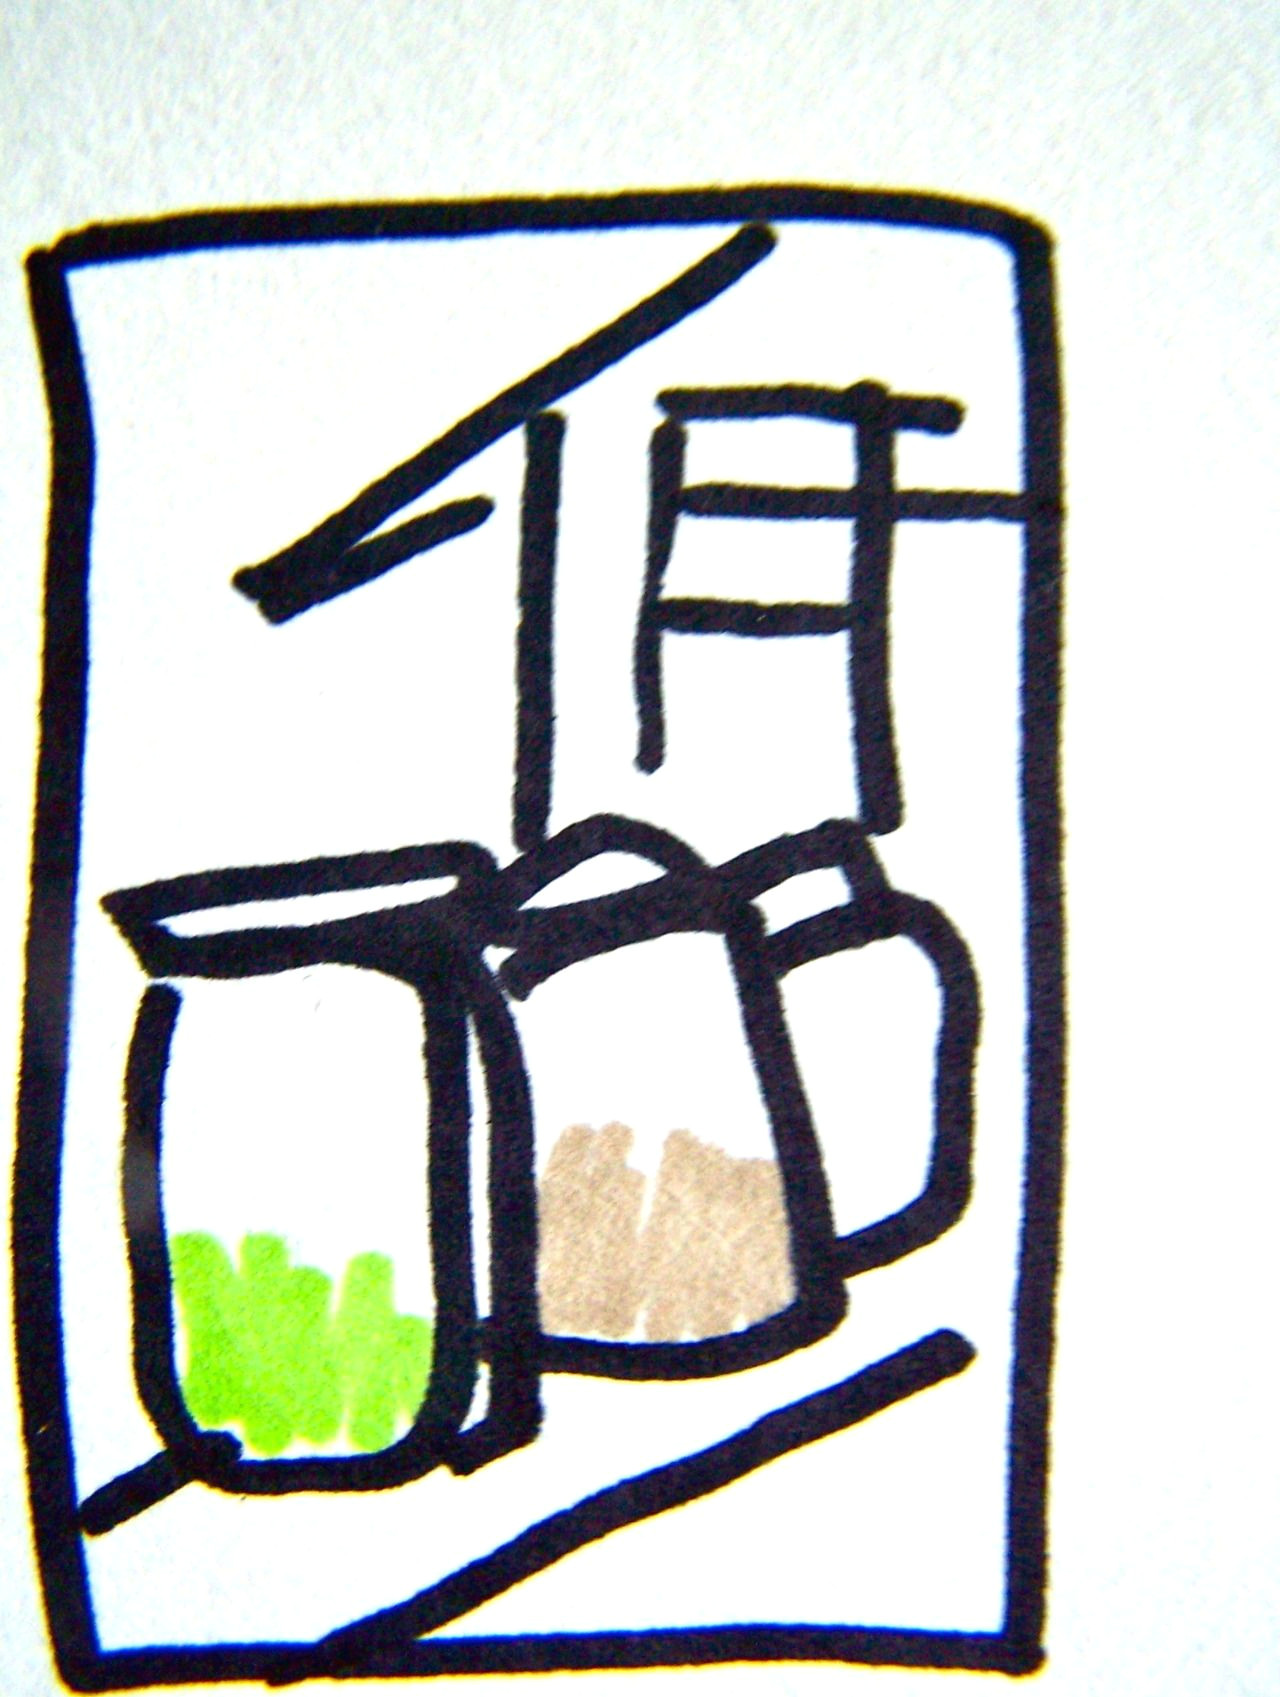 herb jar drawing goodness from i make tea good4you on tumblr